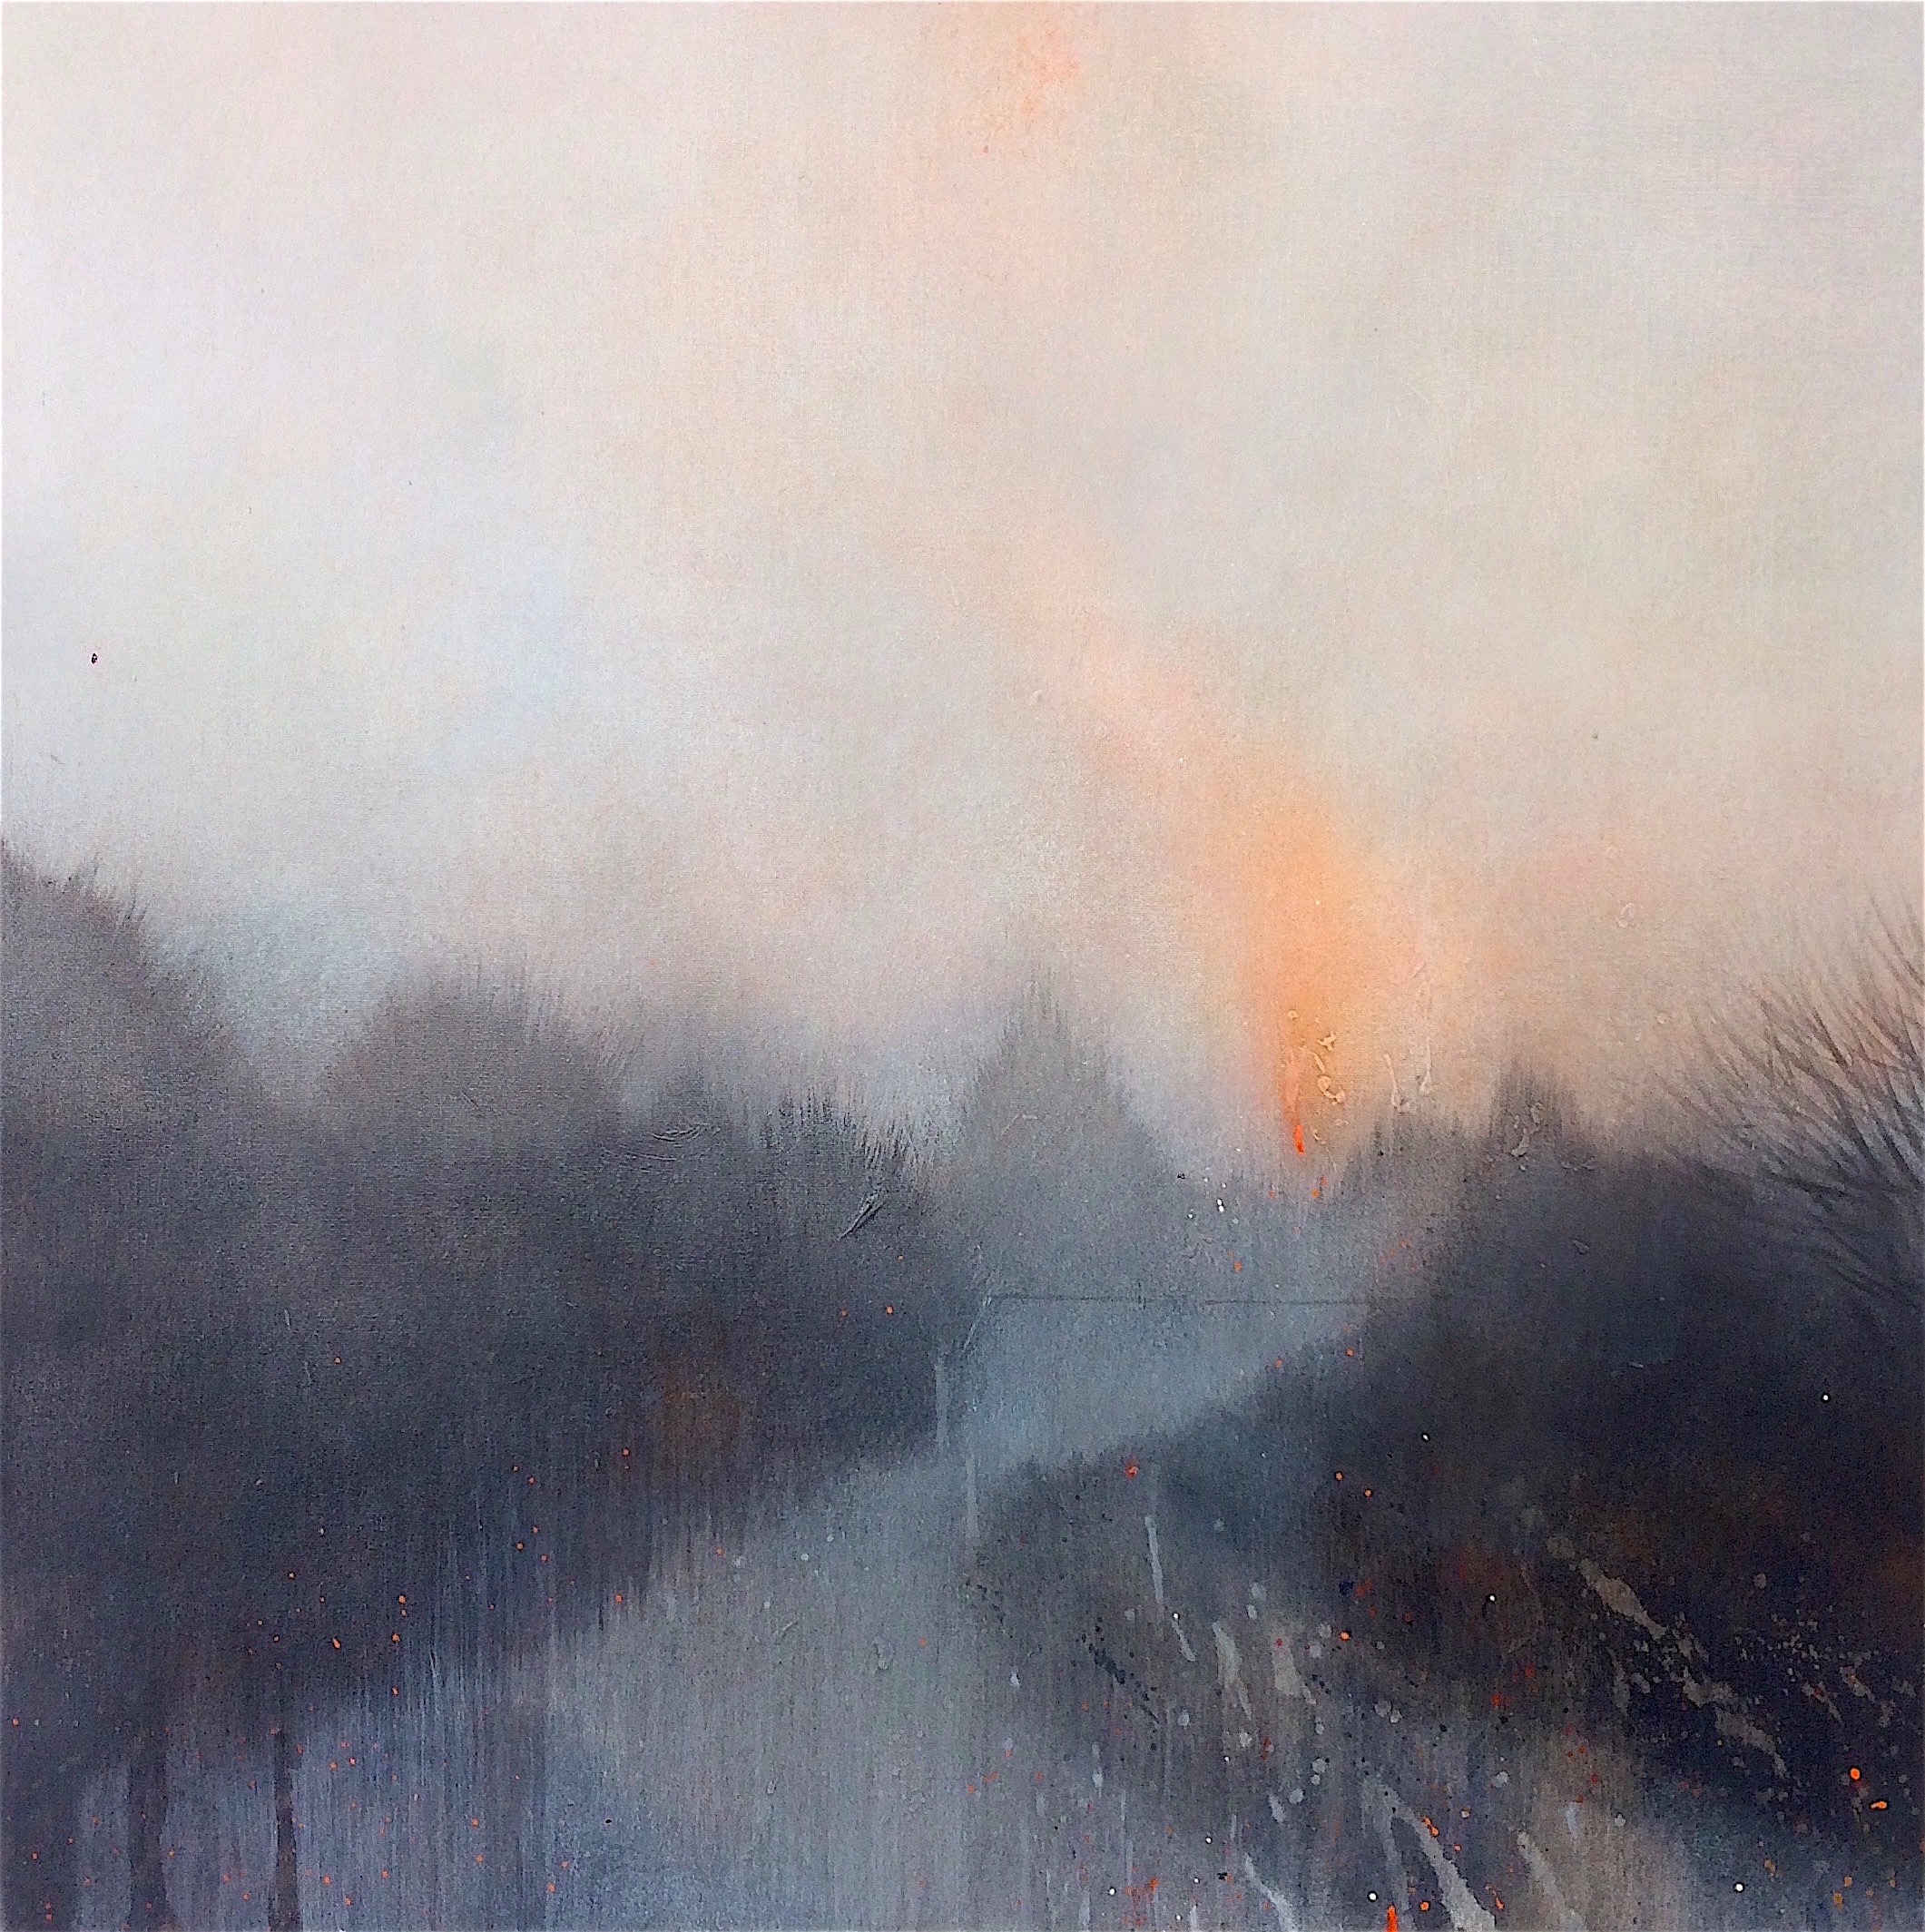 Copy of Fire at dusk 50x50cm